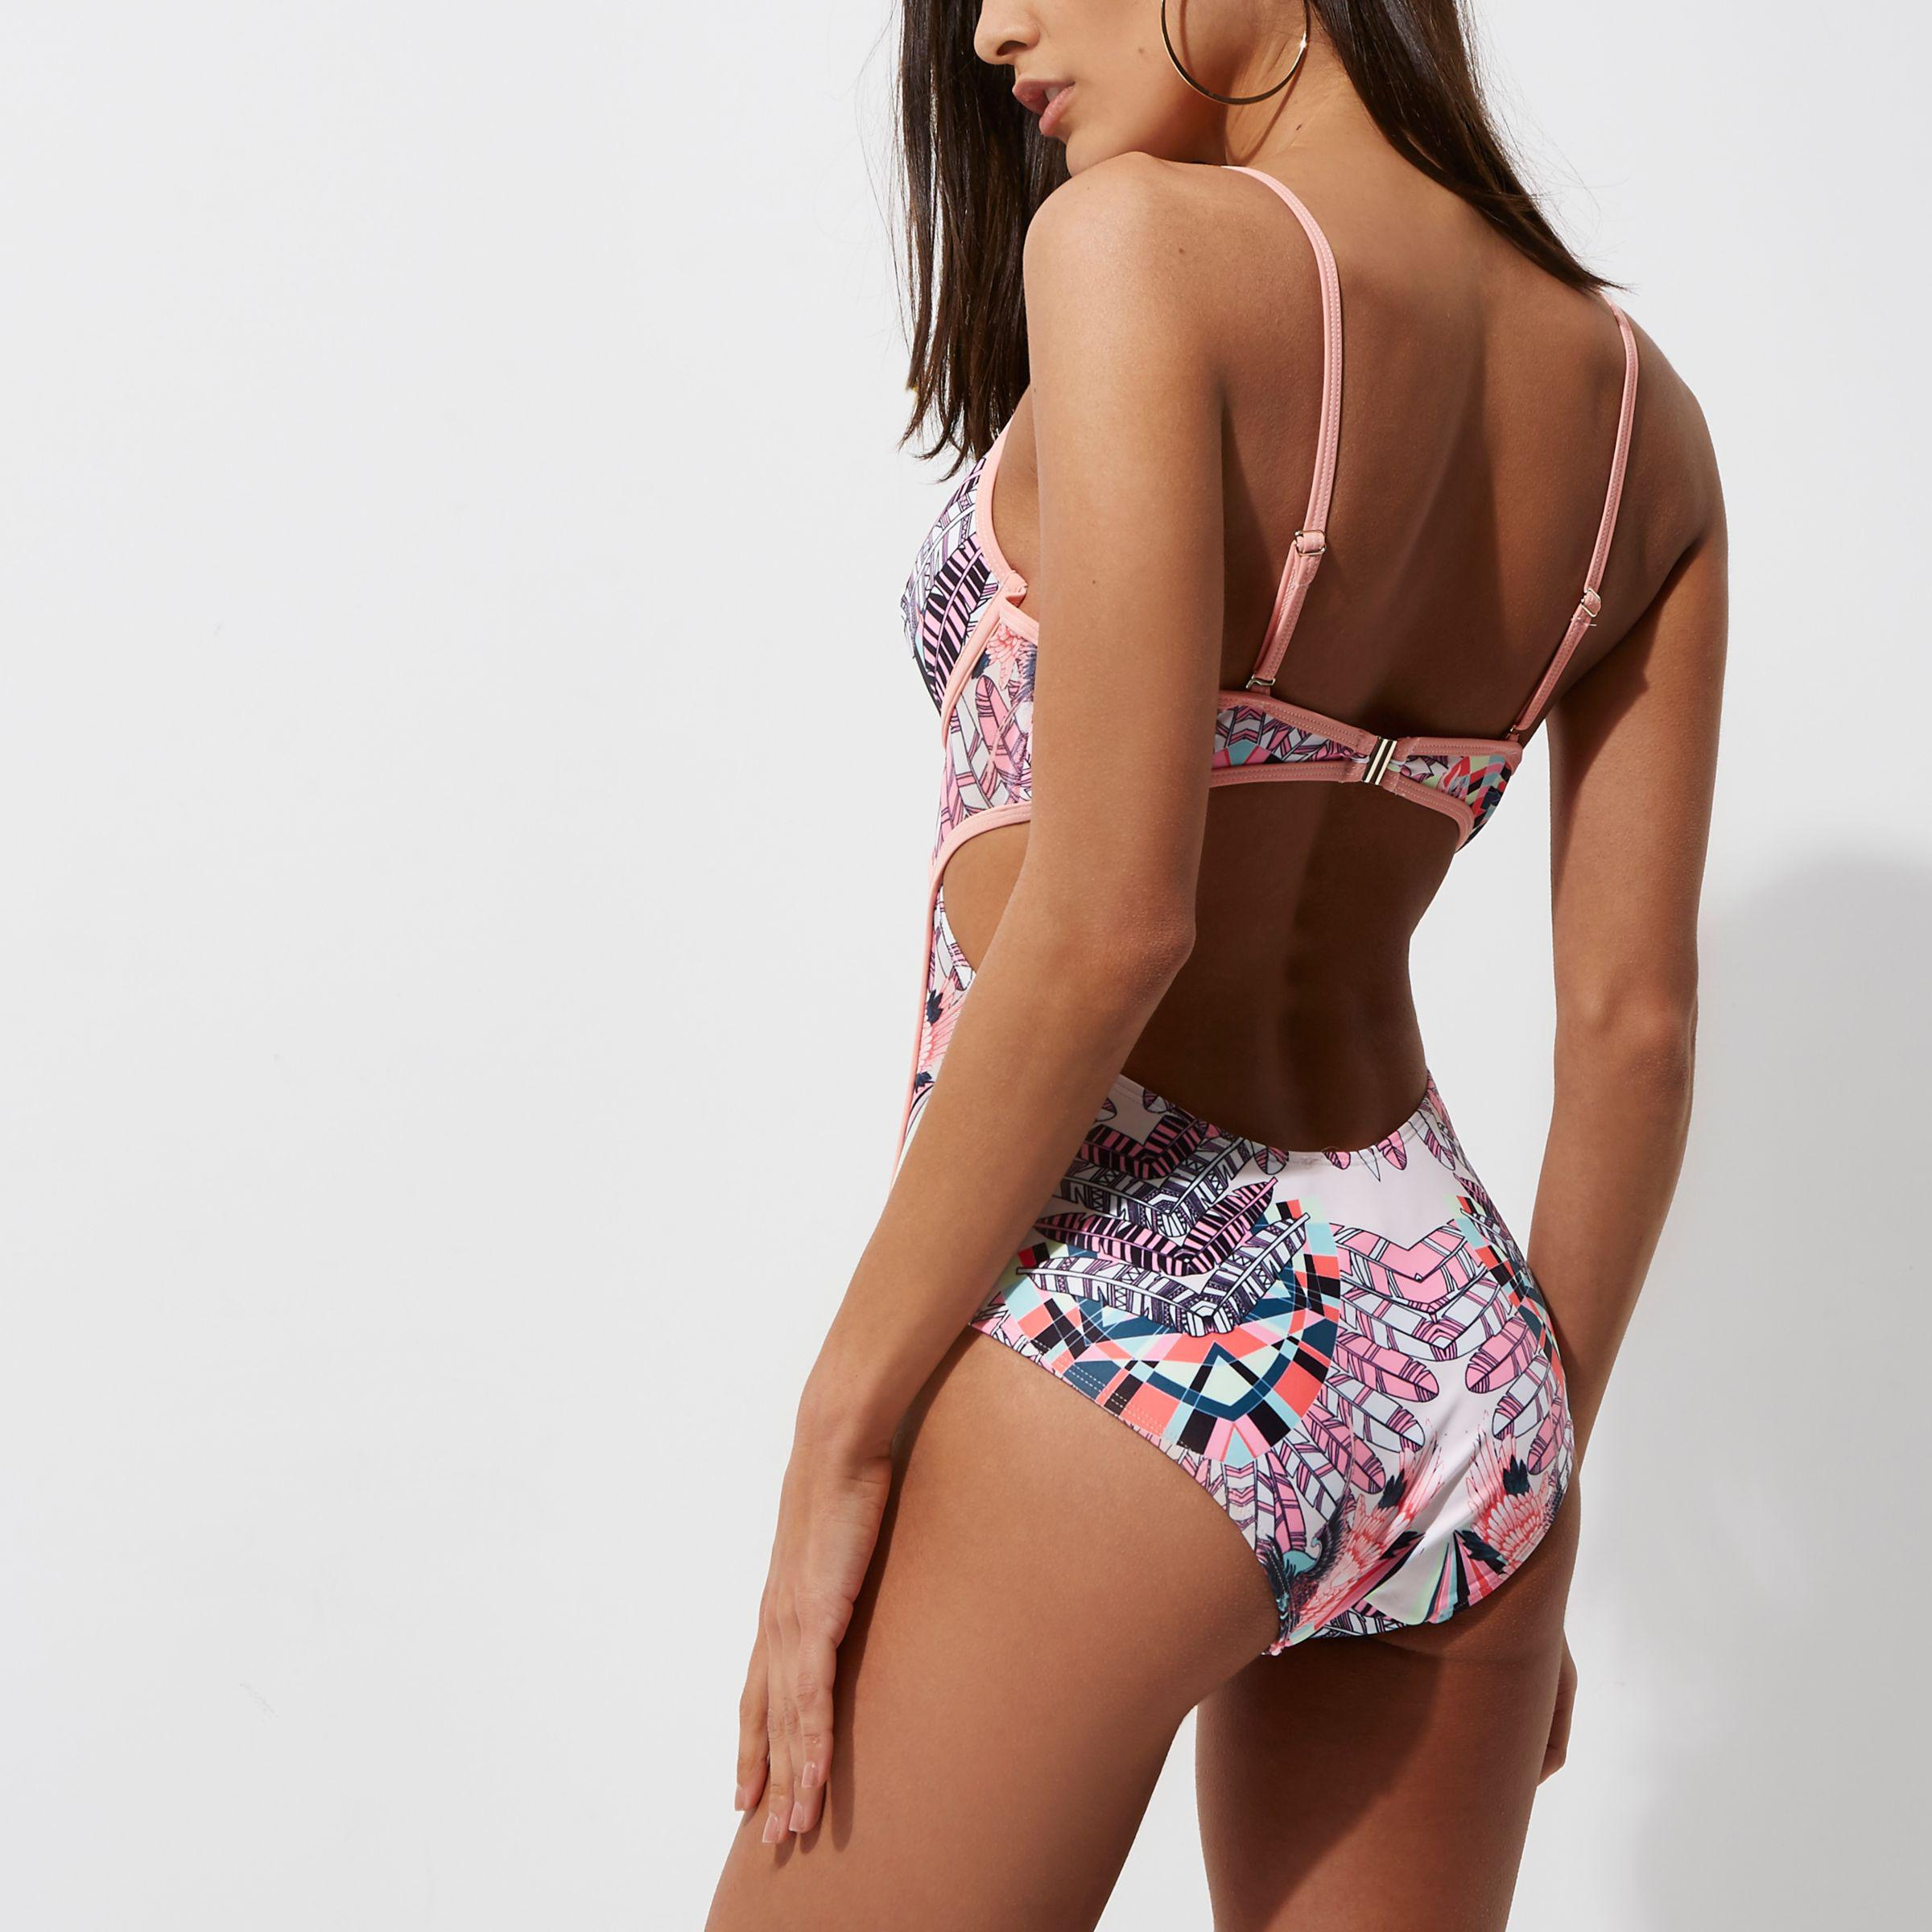 59f7bce6a28a River Island Pink Feather Print Cut Out Plunge Swimsuit in Pink - Lyst